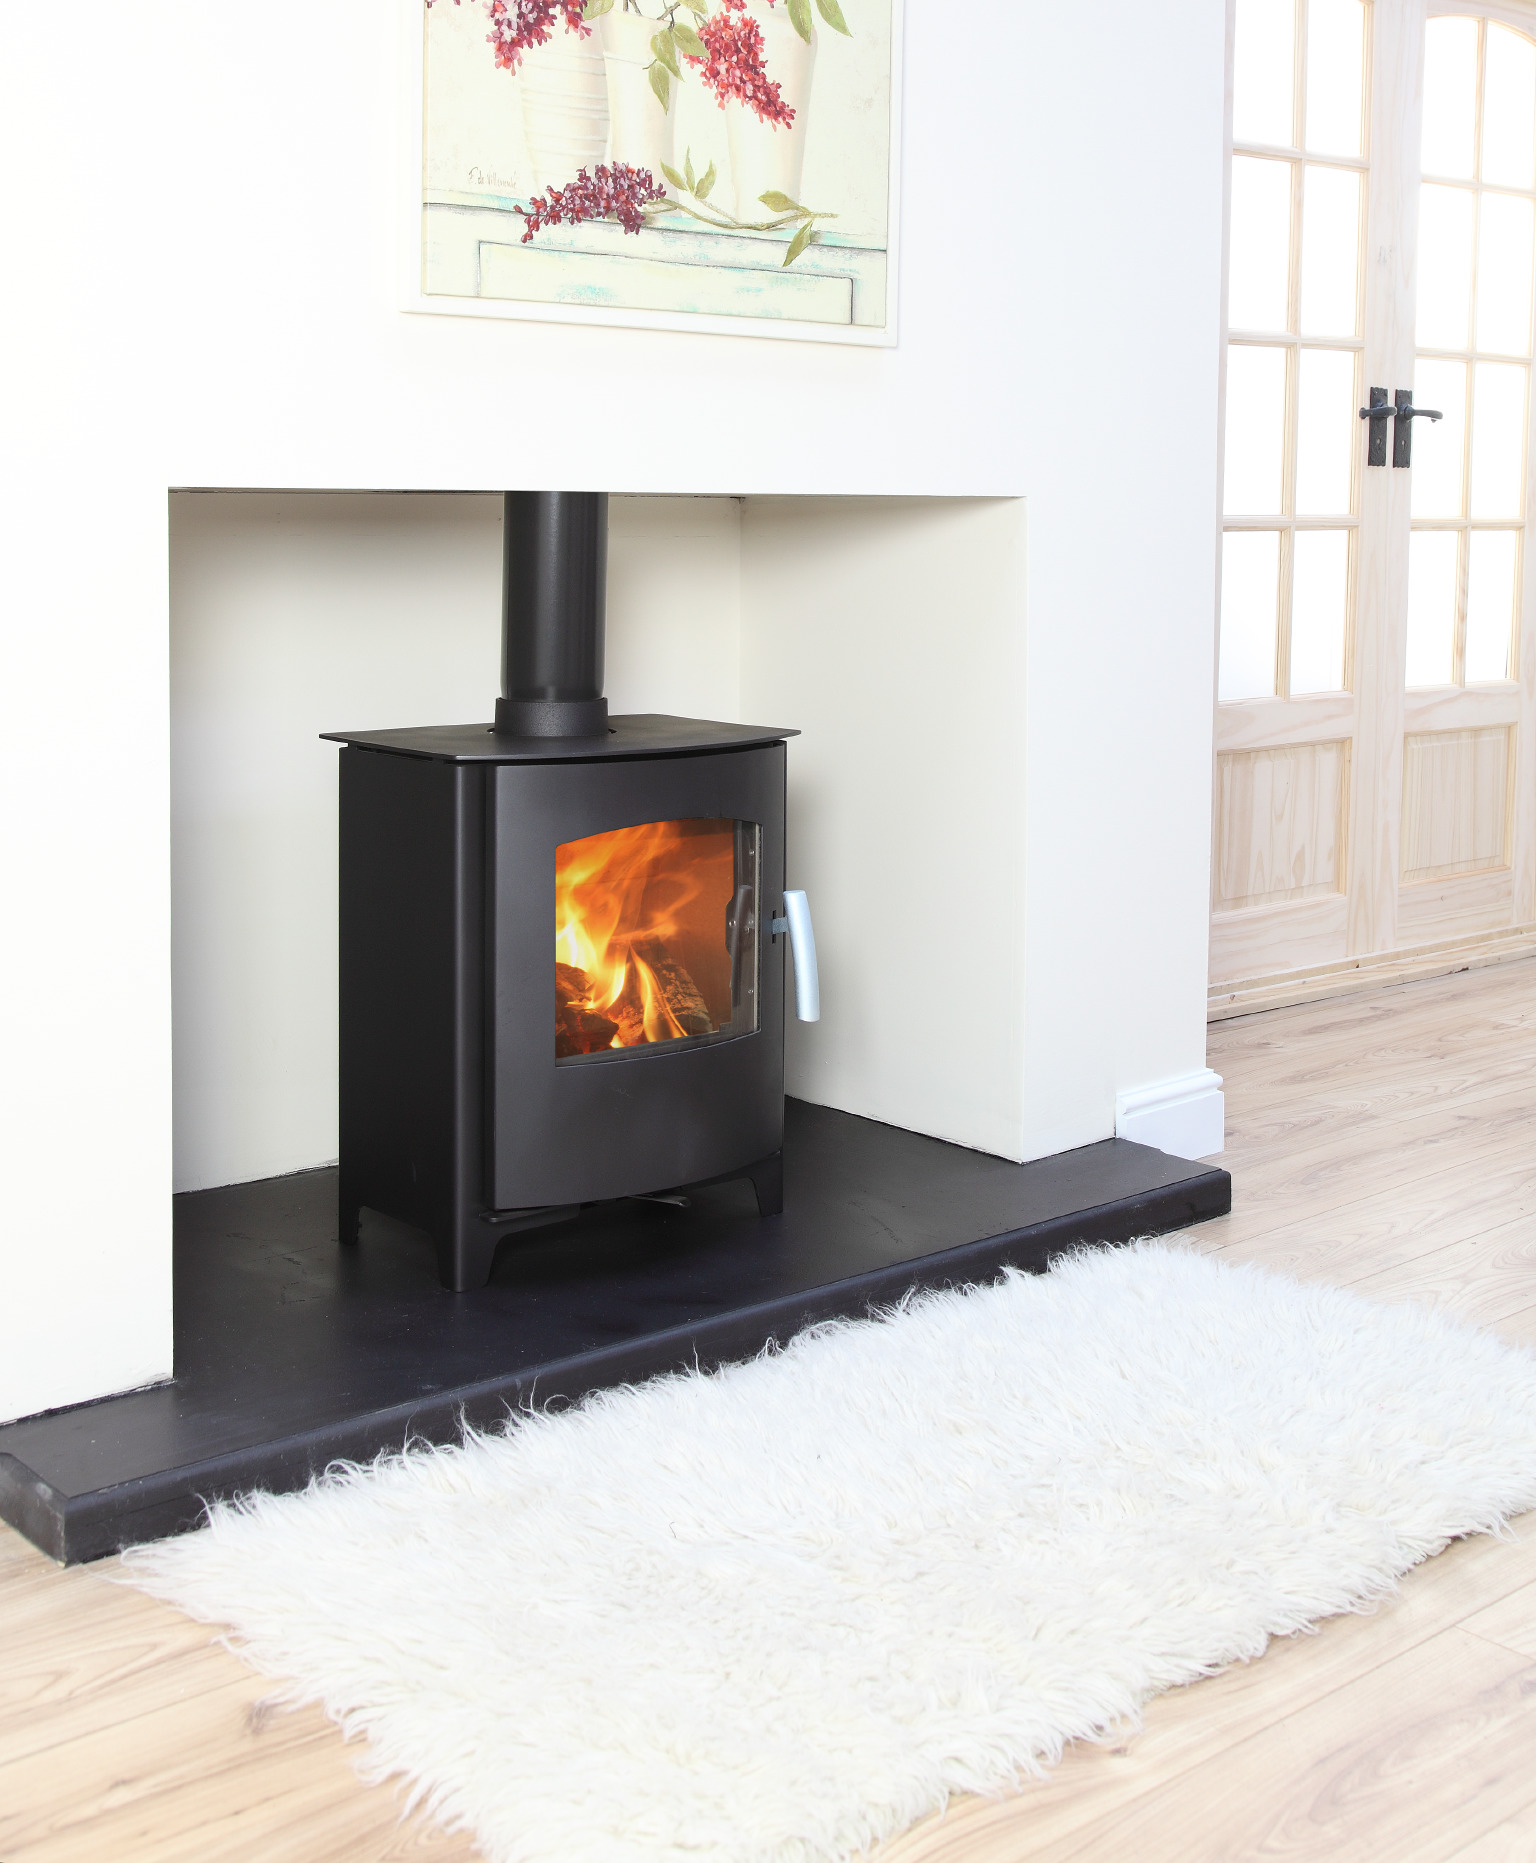 Churchill, freestanding, granite hearth, slate hearth, woodburning, multifuel, Bangor, Newtownards, Belfast, Holywood, Conlig, Stove yard, Fireplaces, flue pipe, hearths, room heater, wilsons, Portaferry, Kircubbin, Greyabbey, riven slate, wooden beans, fireplace beams, fire chambers, open fires, logs, coal, grates, stove glass, grate bars, ards fireplaces, Jubilee Road, Helensbay, Crawfordsburn, flexi flue, chimney cowls, down draught cowls, gas, natural gas, reflex 75T, log effect fire, Gazco, stovax, medip, arada, varde, Henley, hunter, yeoman